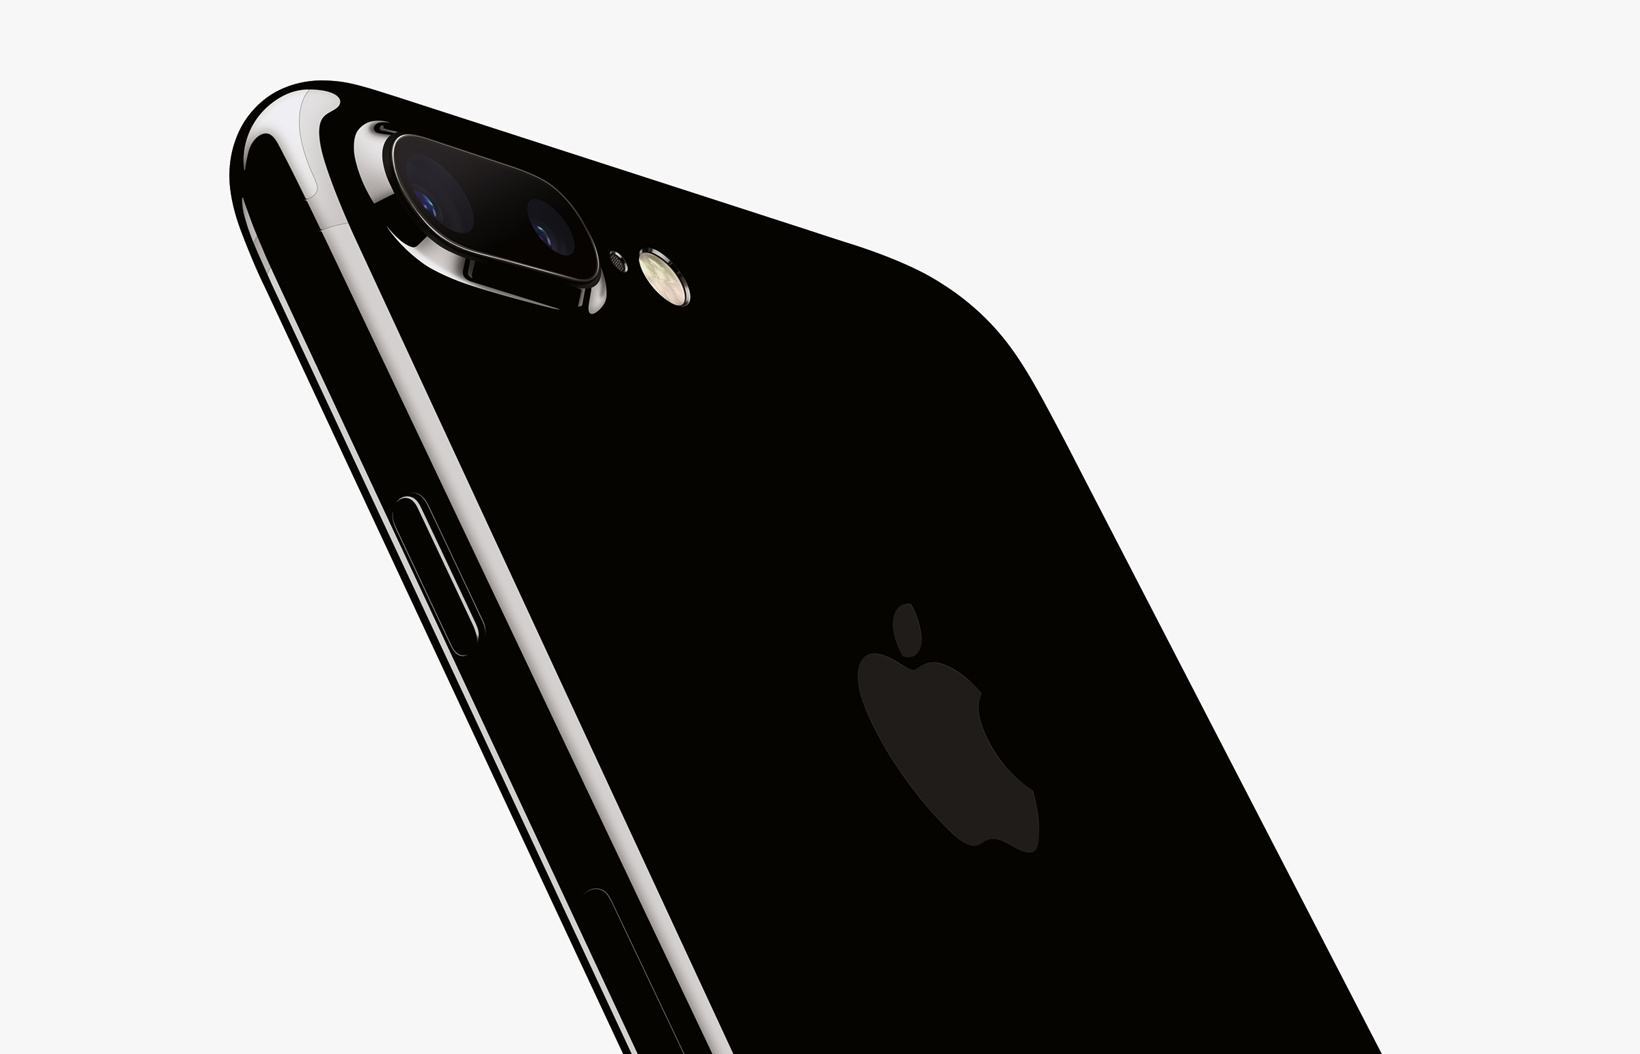 Iphone 7 Jet Black Being Abused In This Video H3llowrld